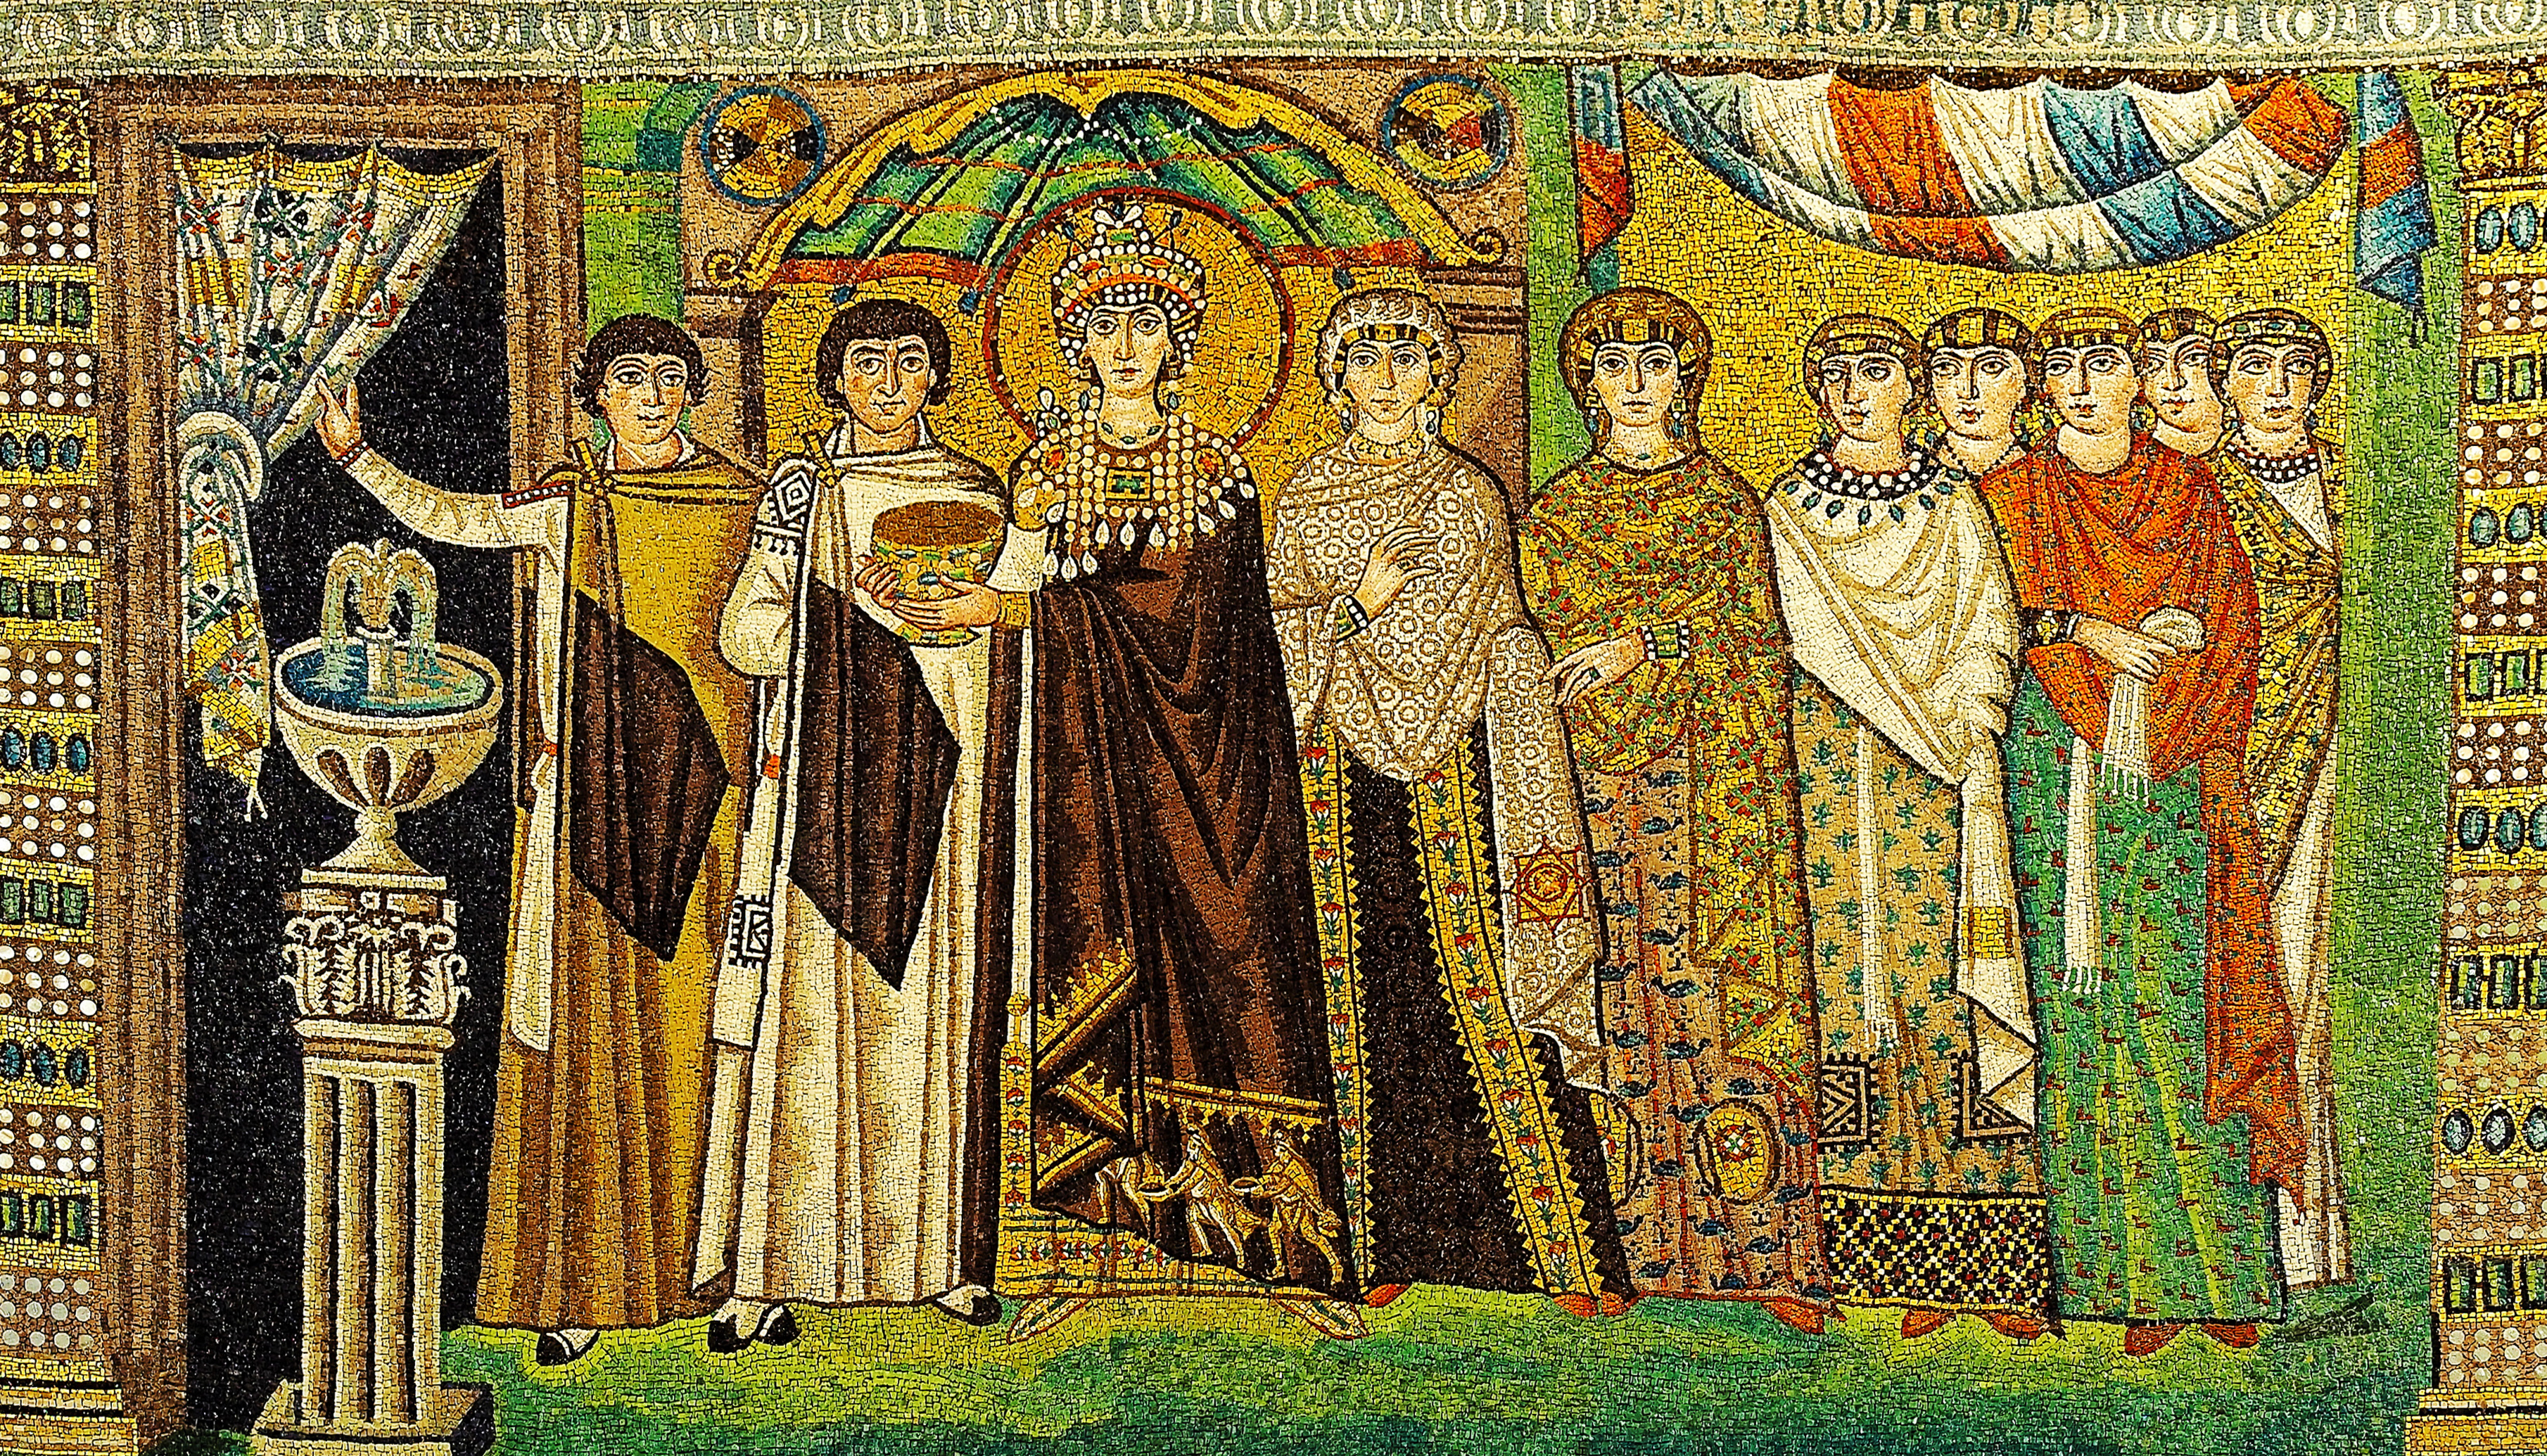 a biography of theodora wife of the emperor of the byzantine empire Potter (constantine the emperor), professor of greek and roman history at the university of michigan, paints a sympathetic portrait of theodora, mistress and then wife of the byzantine emperor justinian i theodora was the most powerful woman of the byzantine empire, and was later canonized by the.